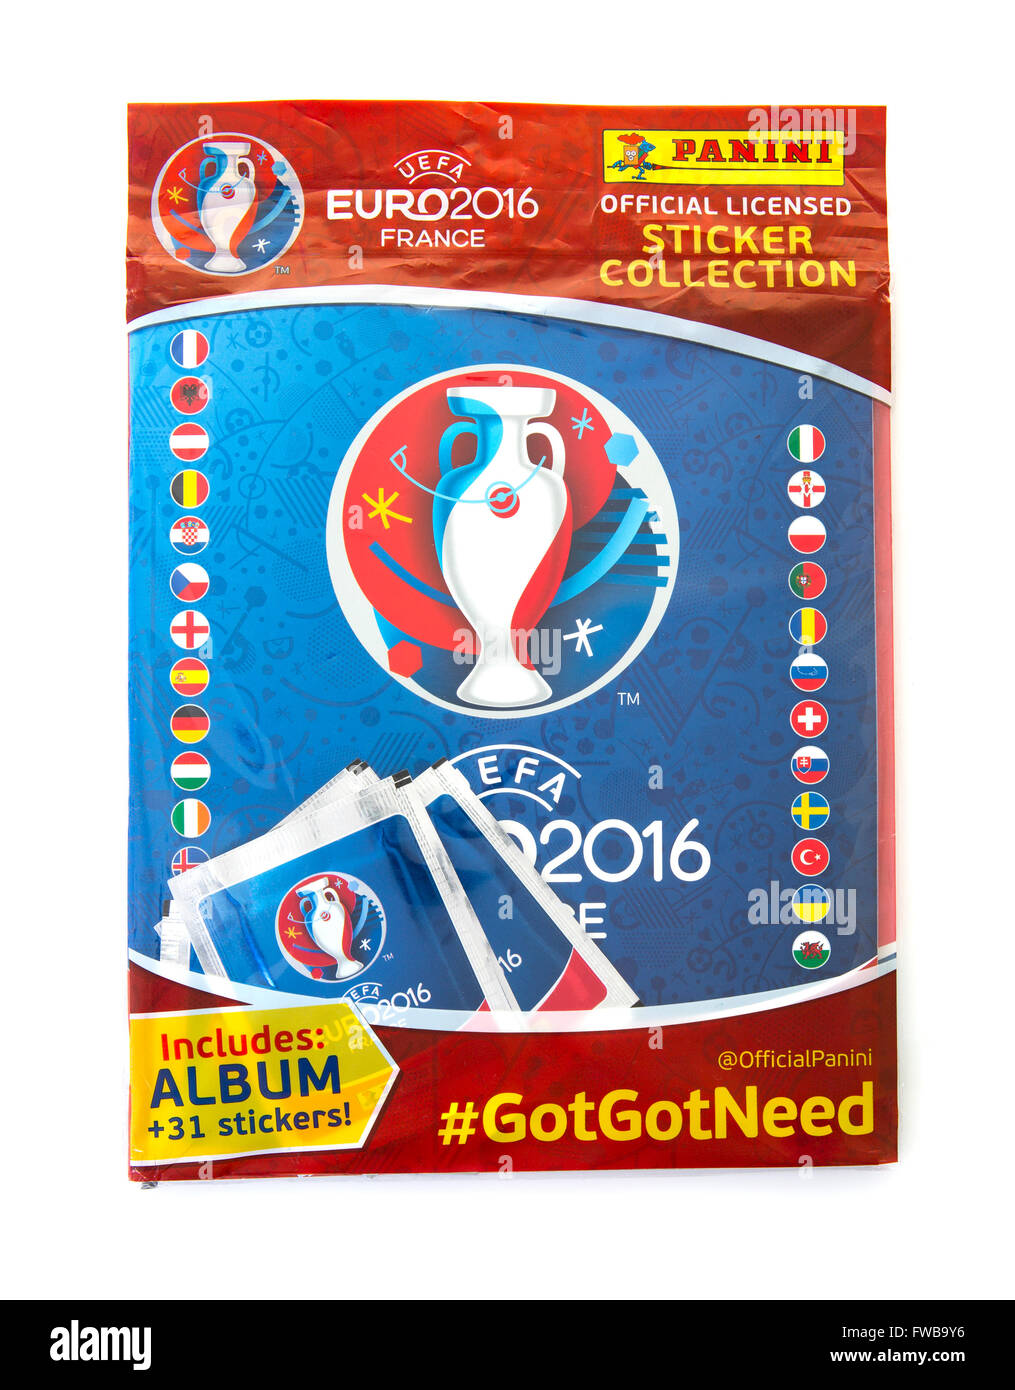 Panini Euro 2016 France Sticker Collection and Album on a white background e910cb2f8c0db